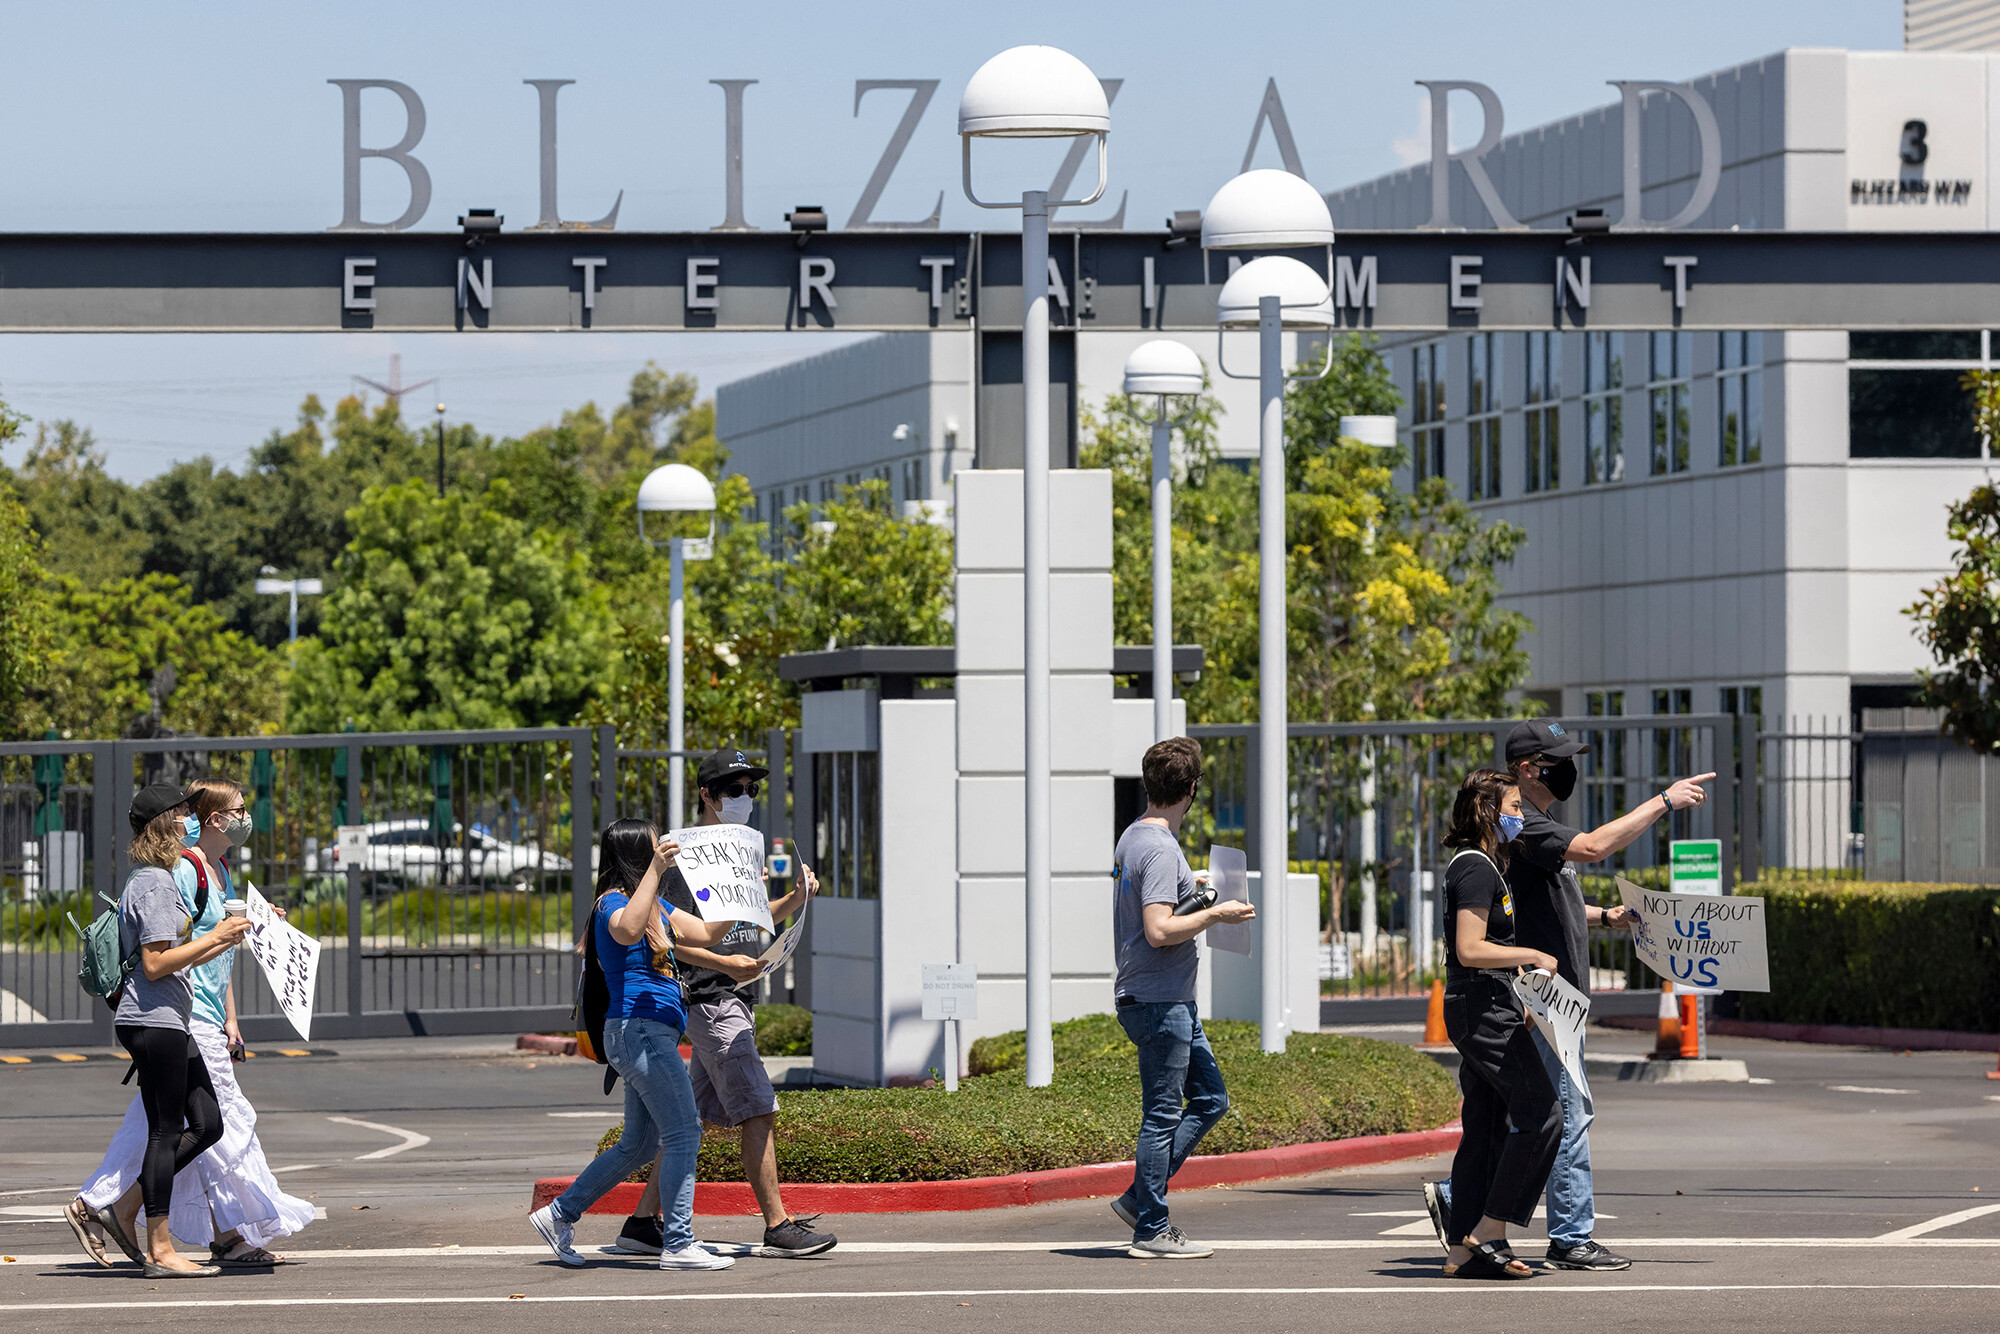 <i>David McNew/AFP/Getty Images</i><br/>Activision Blizzard employees